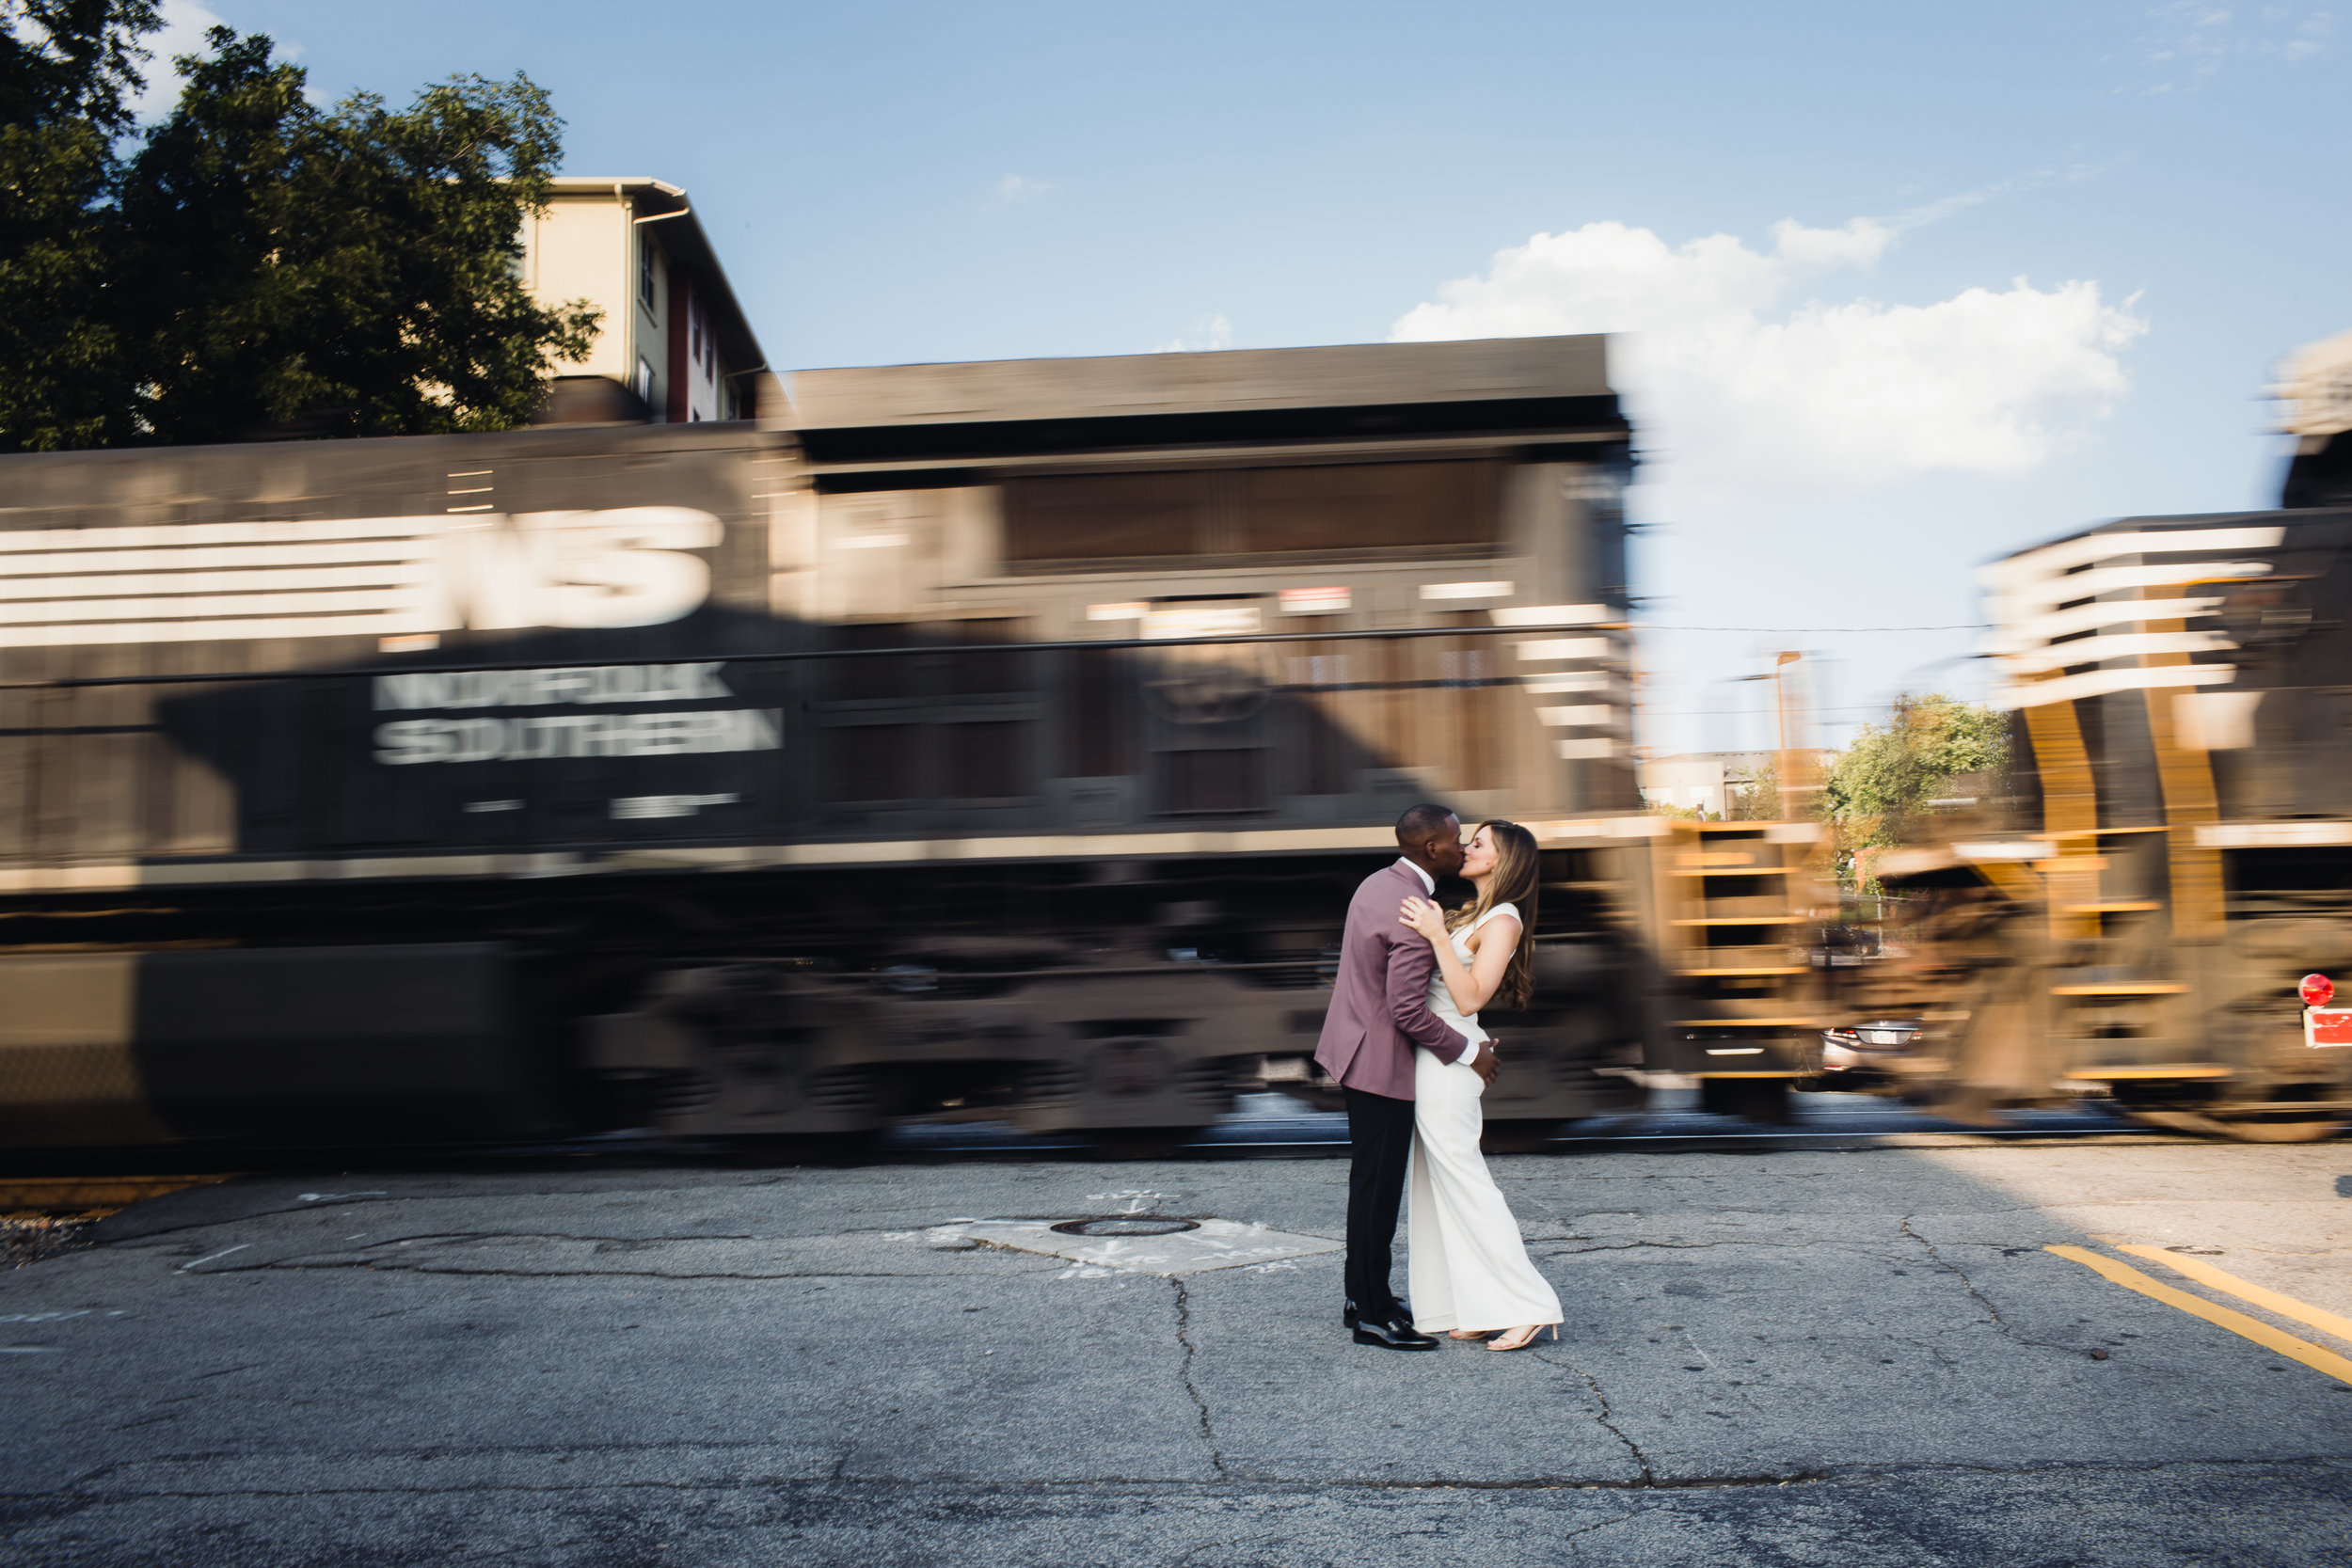 Gianna Keiko Atlanta Destination Elopement Photographer-27.jpg